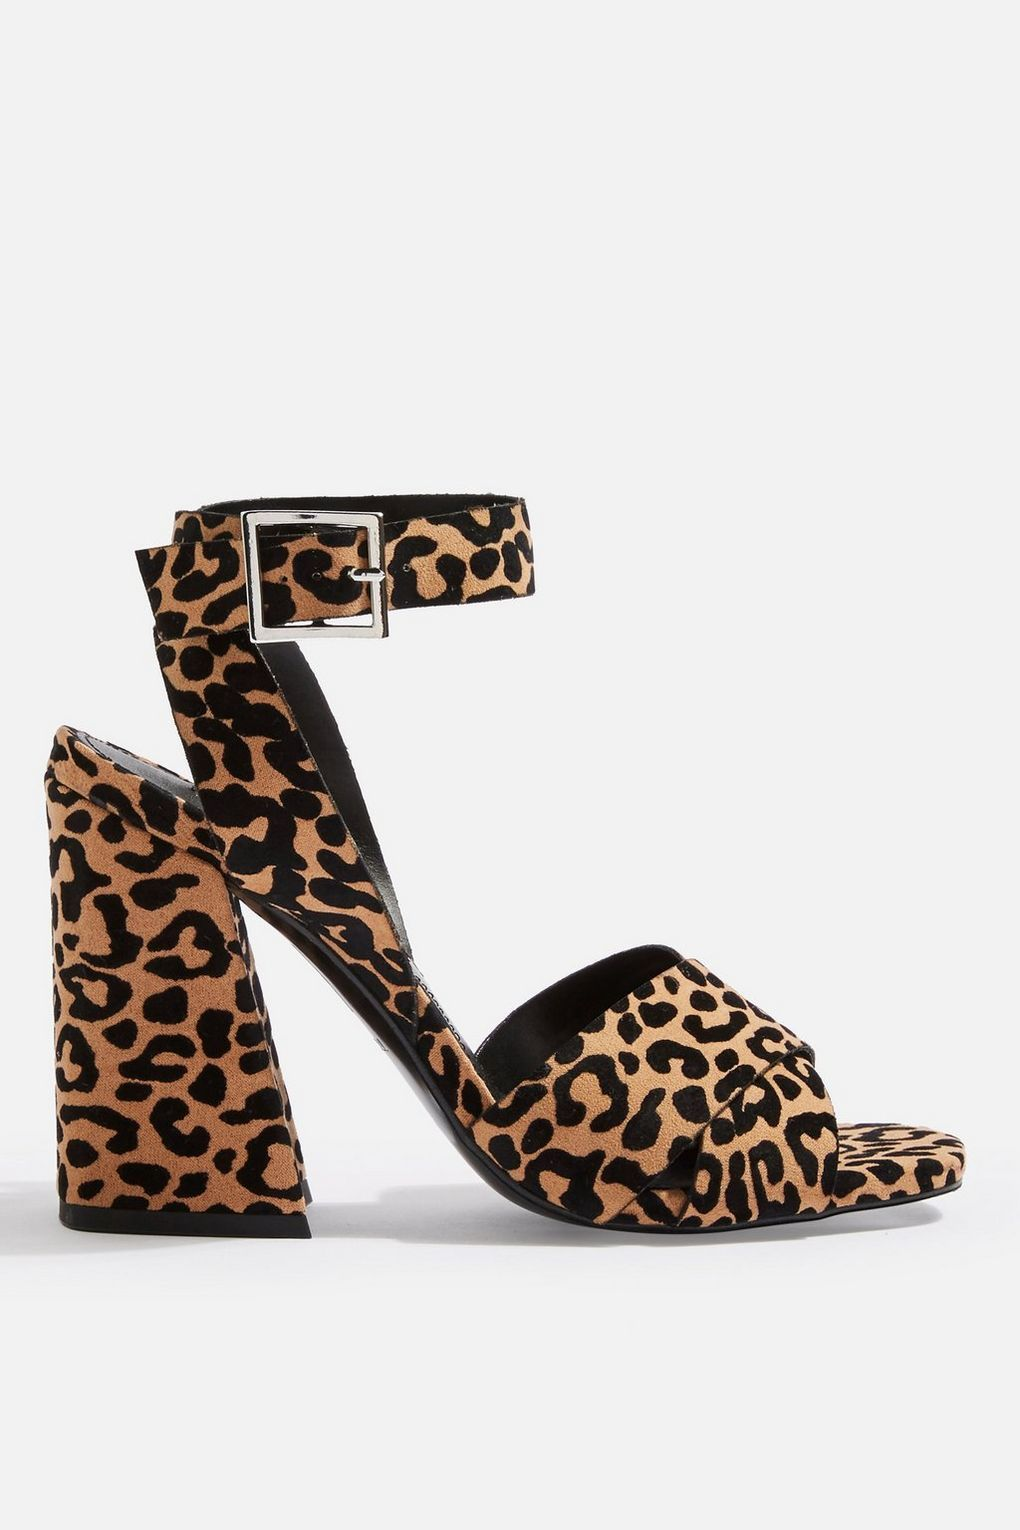 4fb361d305e REGENT Leopard Block Heels - Going Out Shoes - Shoes in 2019